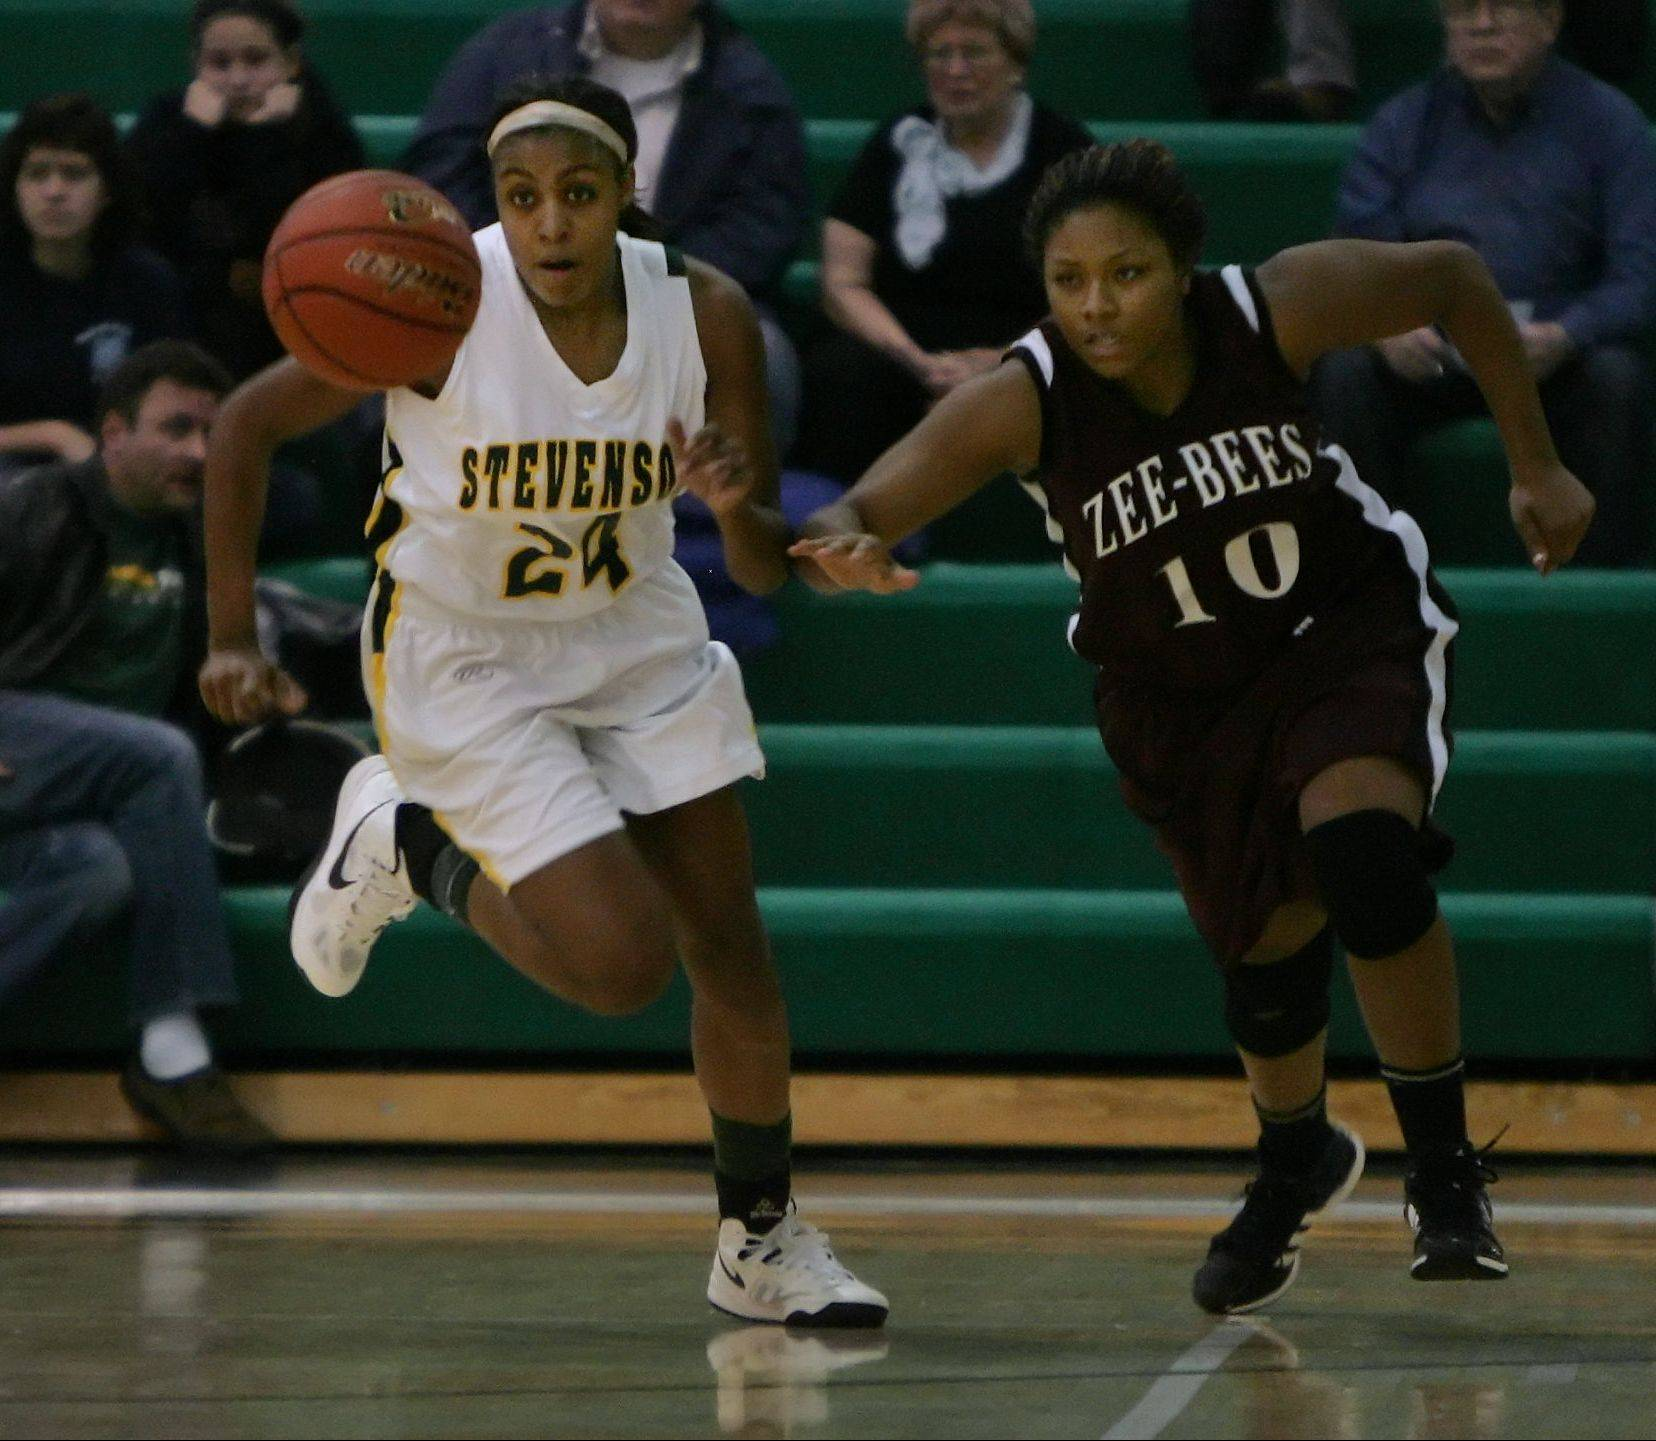 Zee-Bees' threes don't please Stevenson